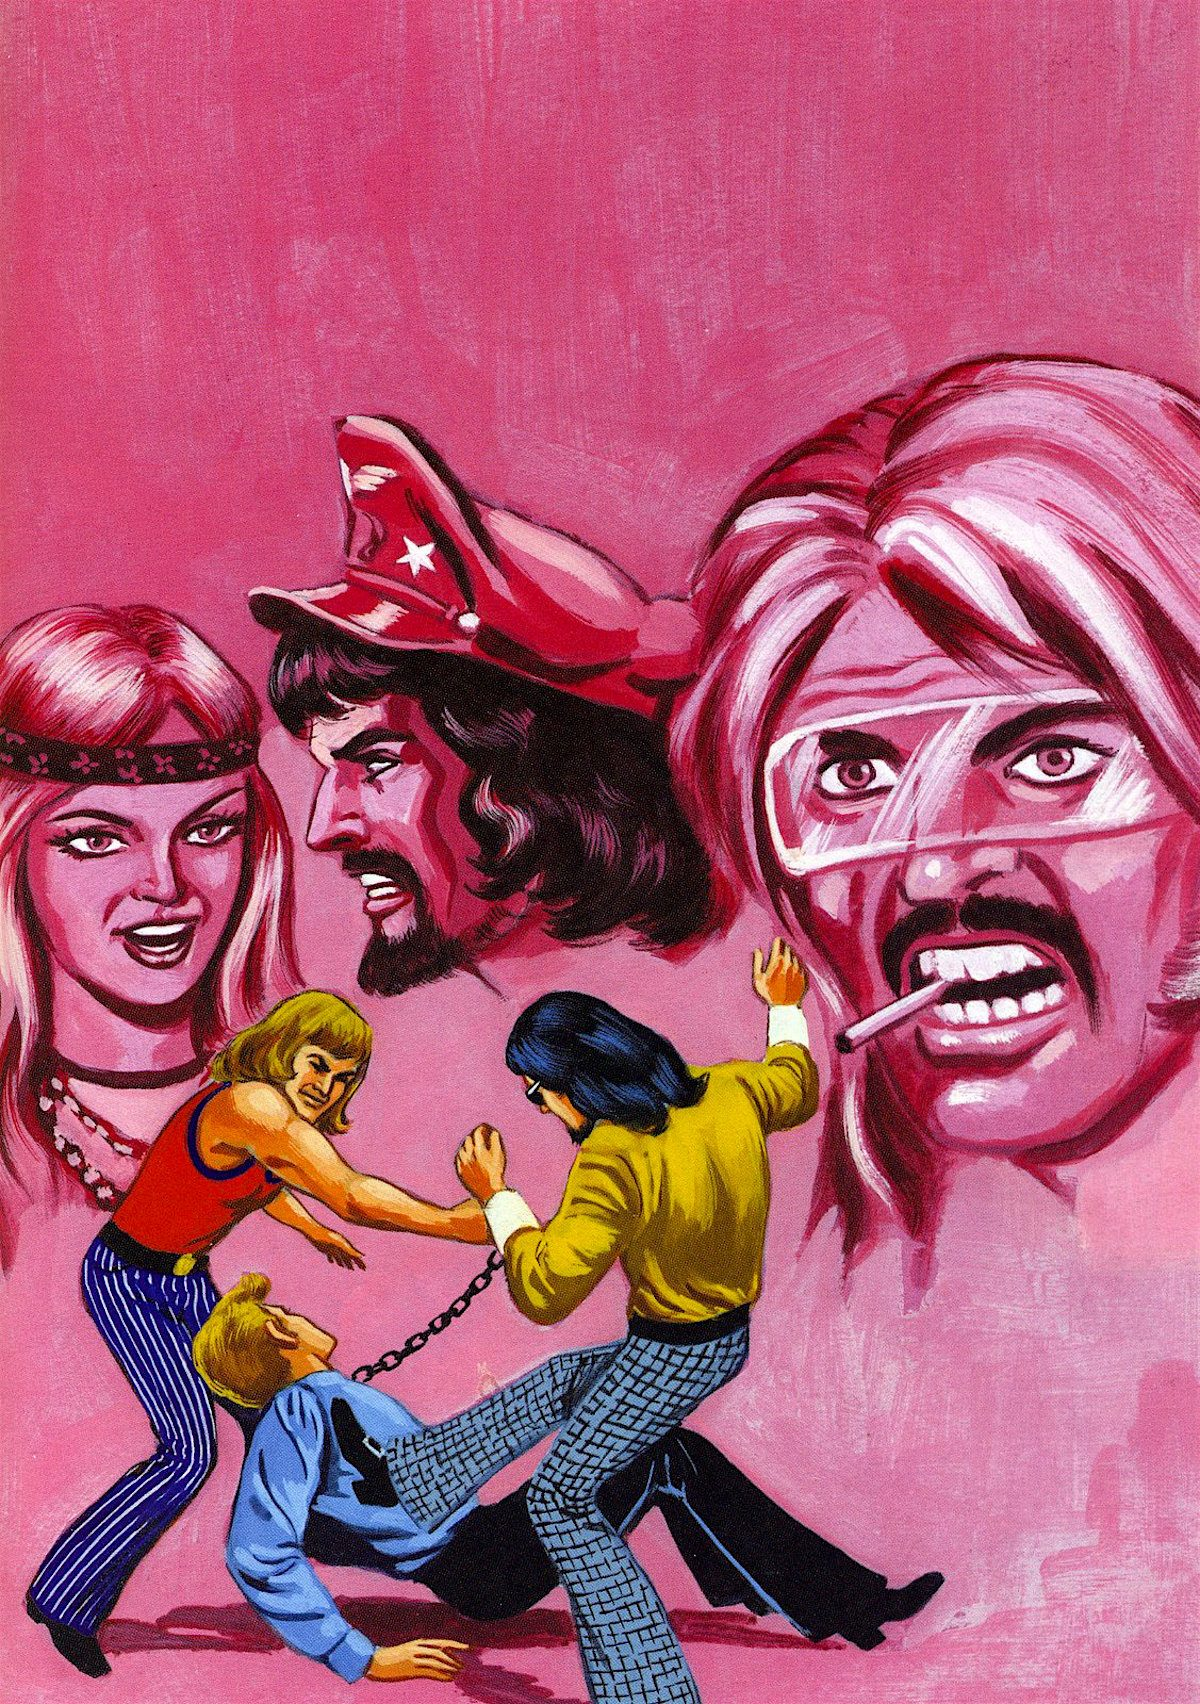 Mexican, pulp art, comics